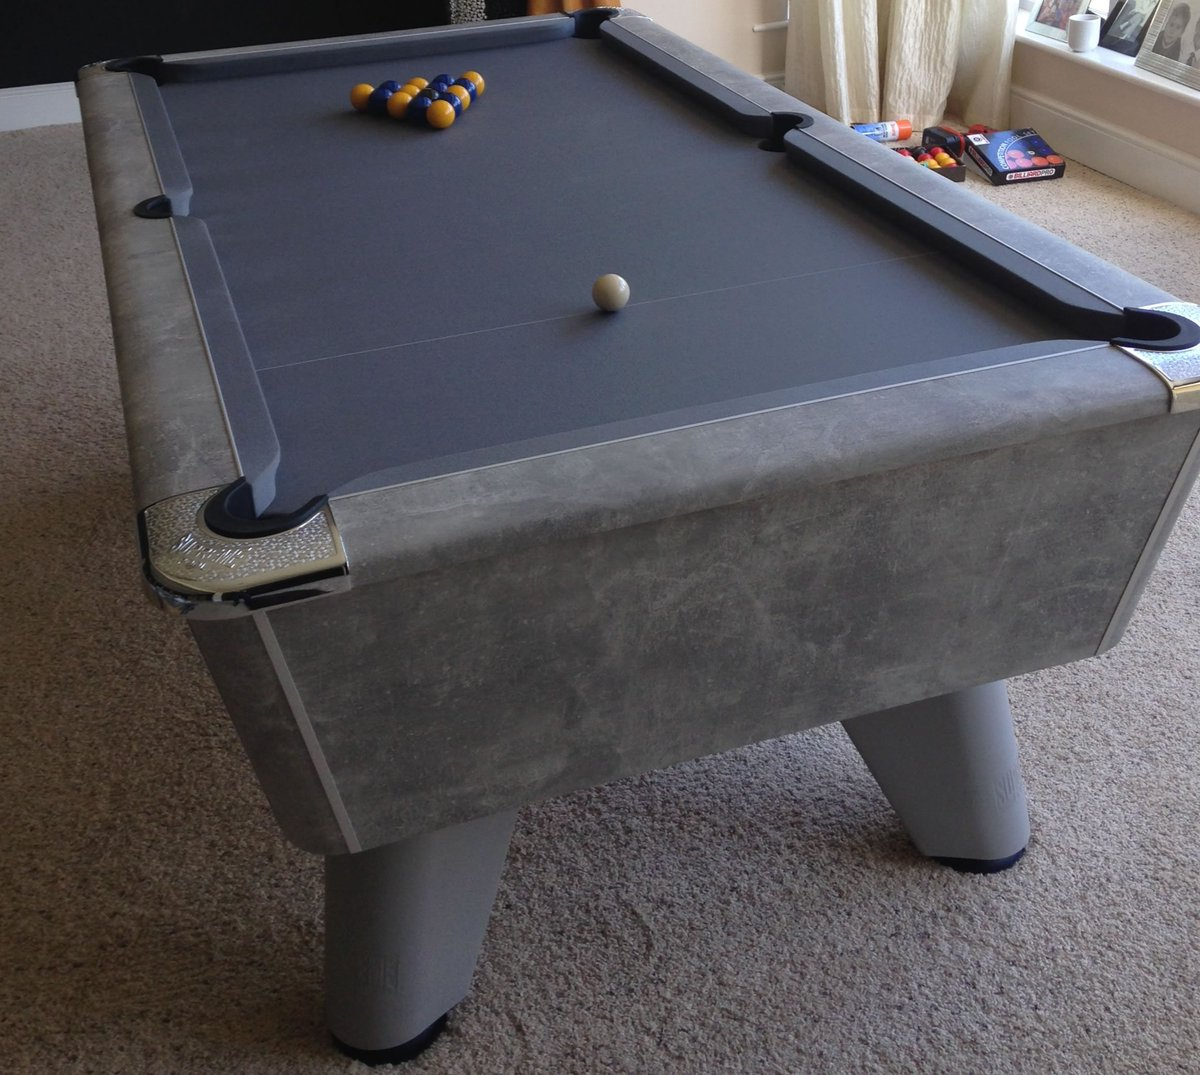 IQ Pool Tables On Twitter Our Current Bestselling Pool Table - Italian pool table